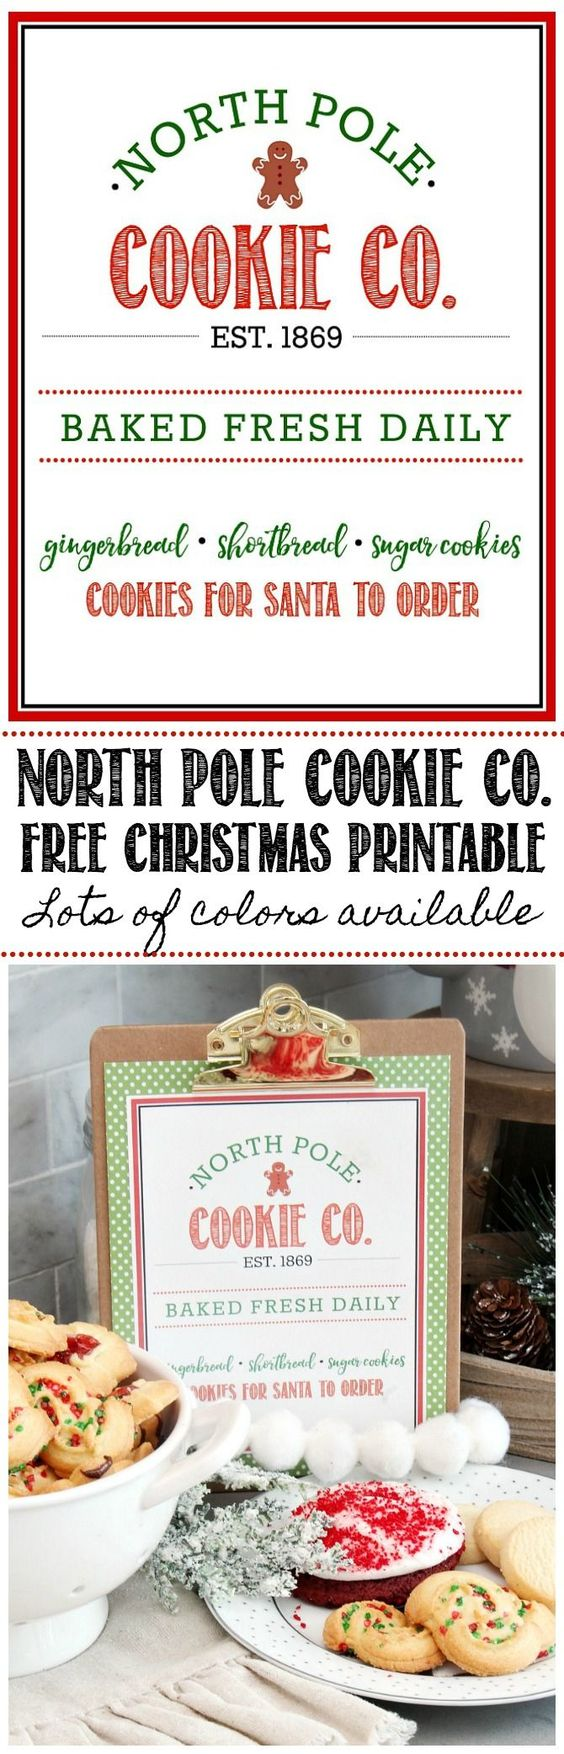 "North Pole Cookie Co. Free Christmas Printable | Clean and Scentsible ""This free North Pole Cookie. Co Christmas printable will be a fun addition to your Christmas decor. Great for Christmas parties and cookie exchanges too!"""